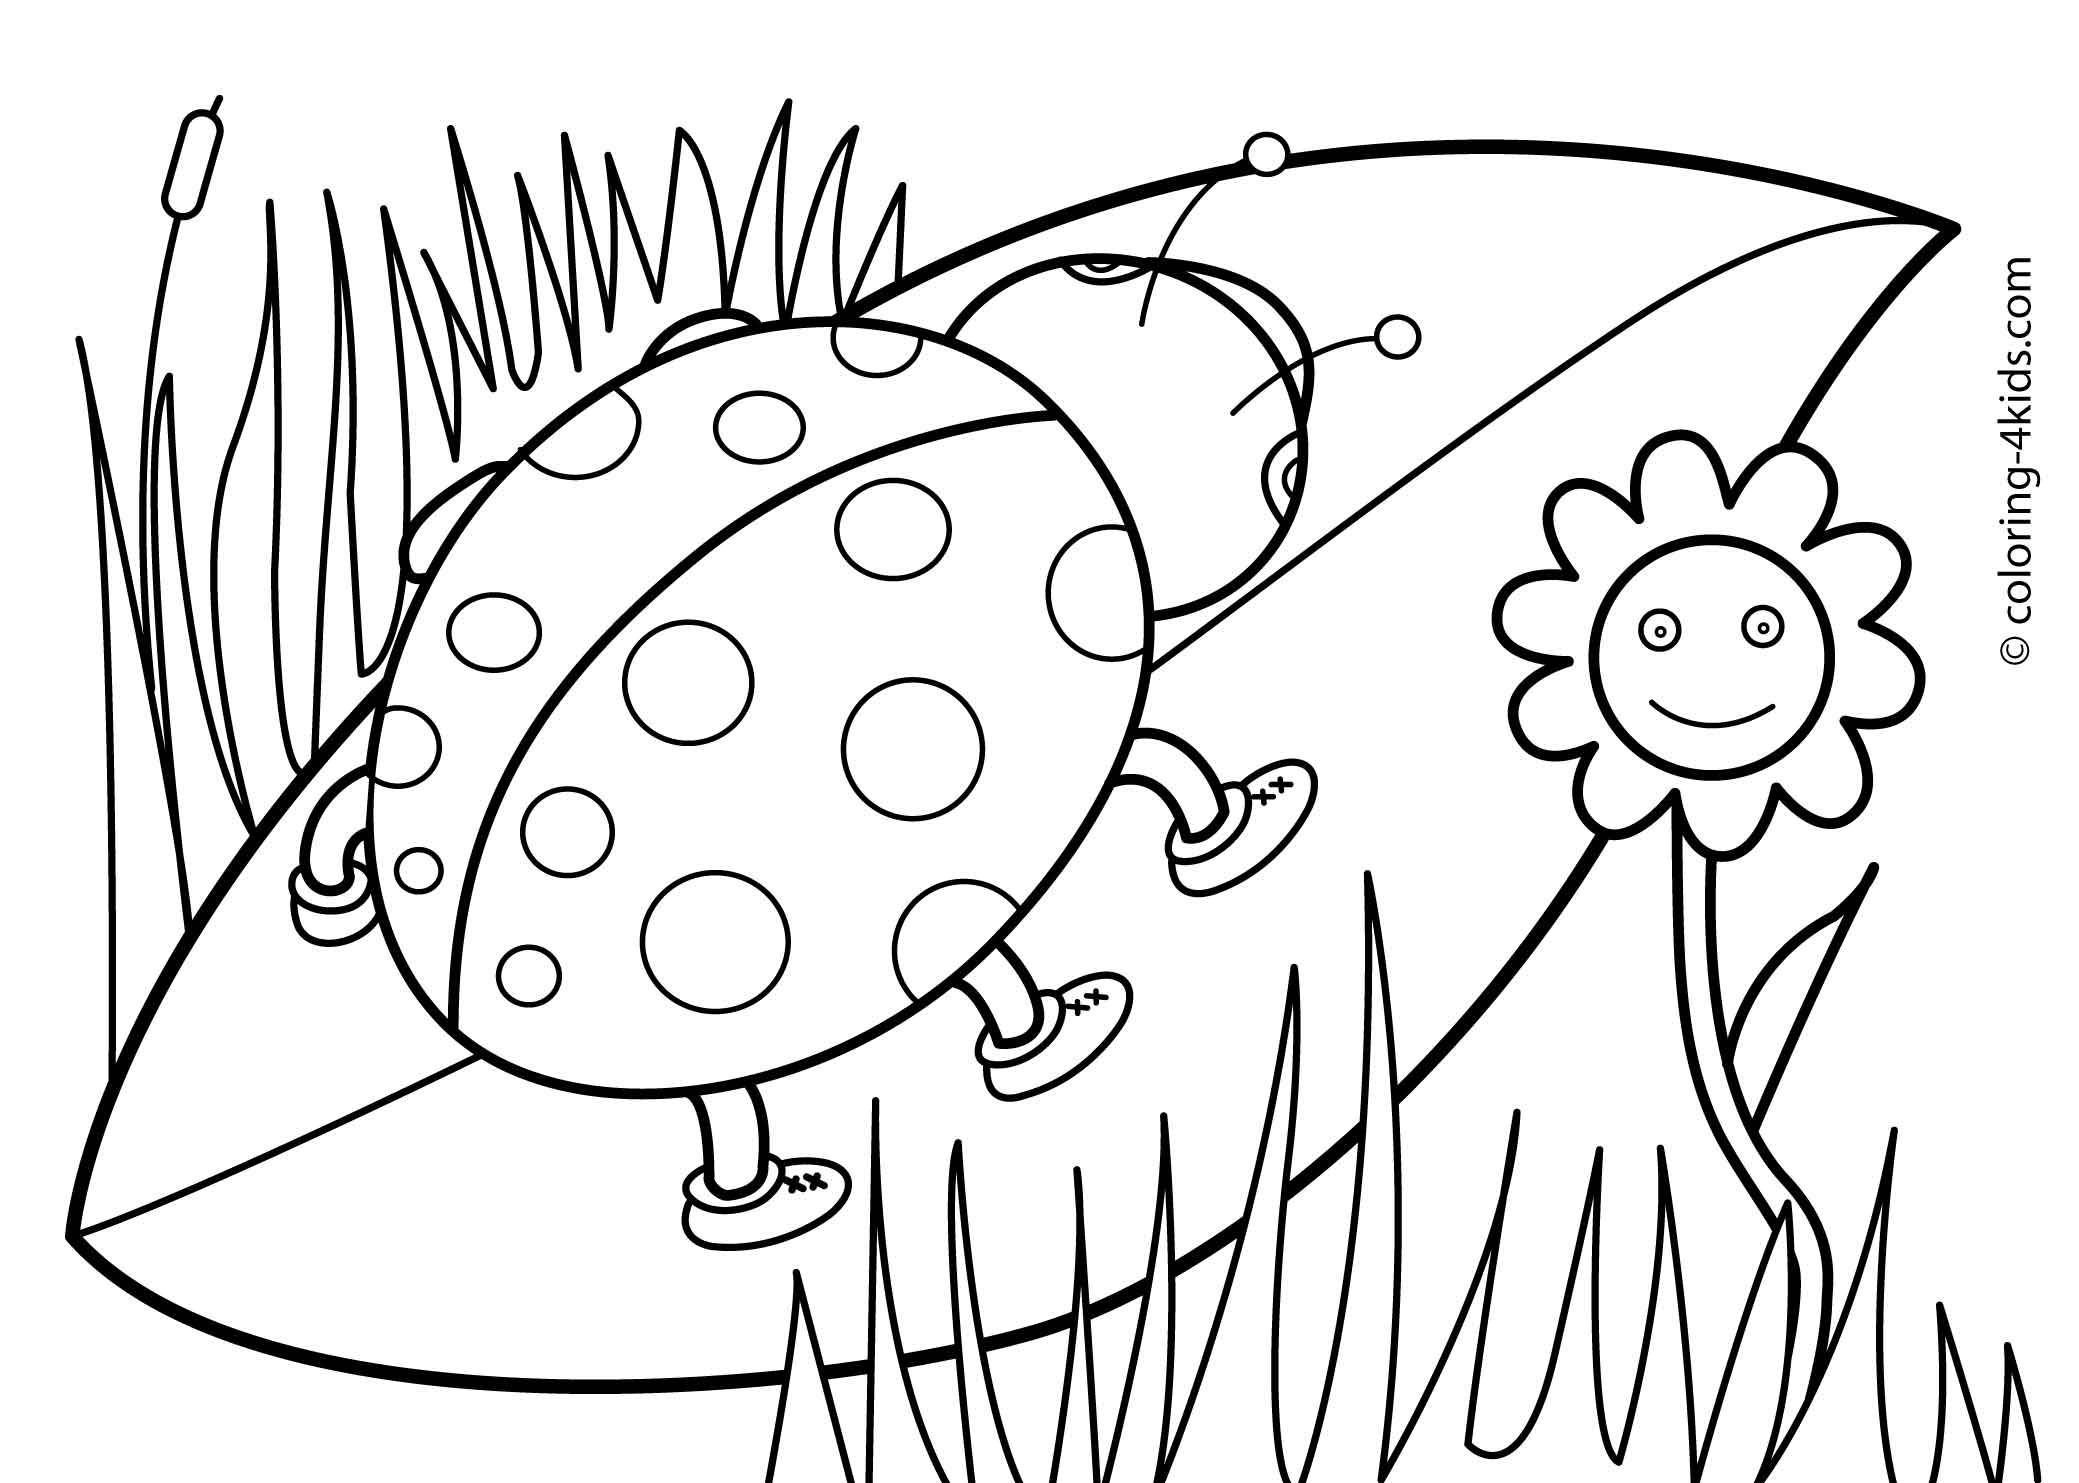 Coloring Pages Prek Coloring Pages 1000 images about coloring pages on pinterest frozen and ice cream pages